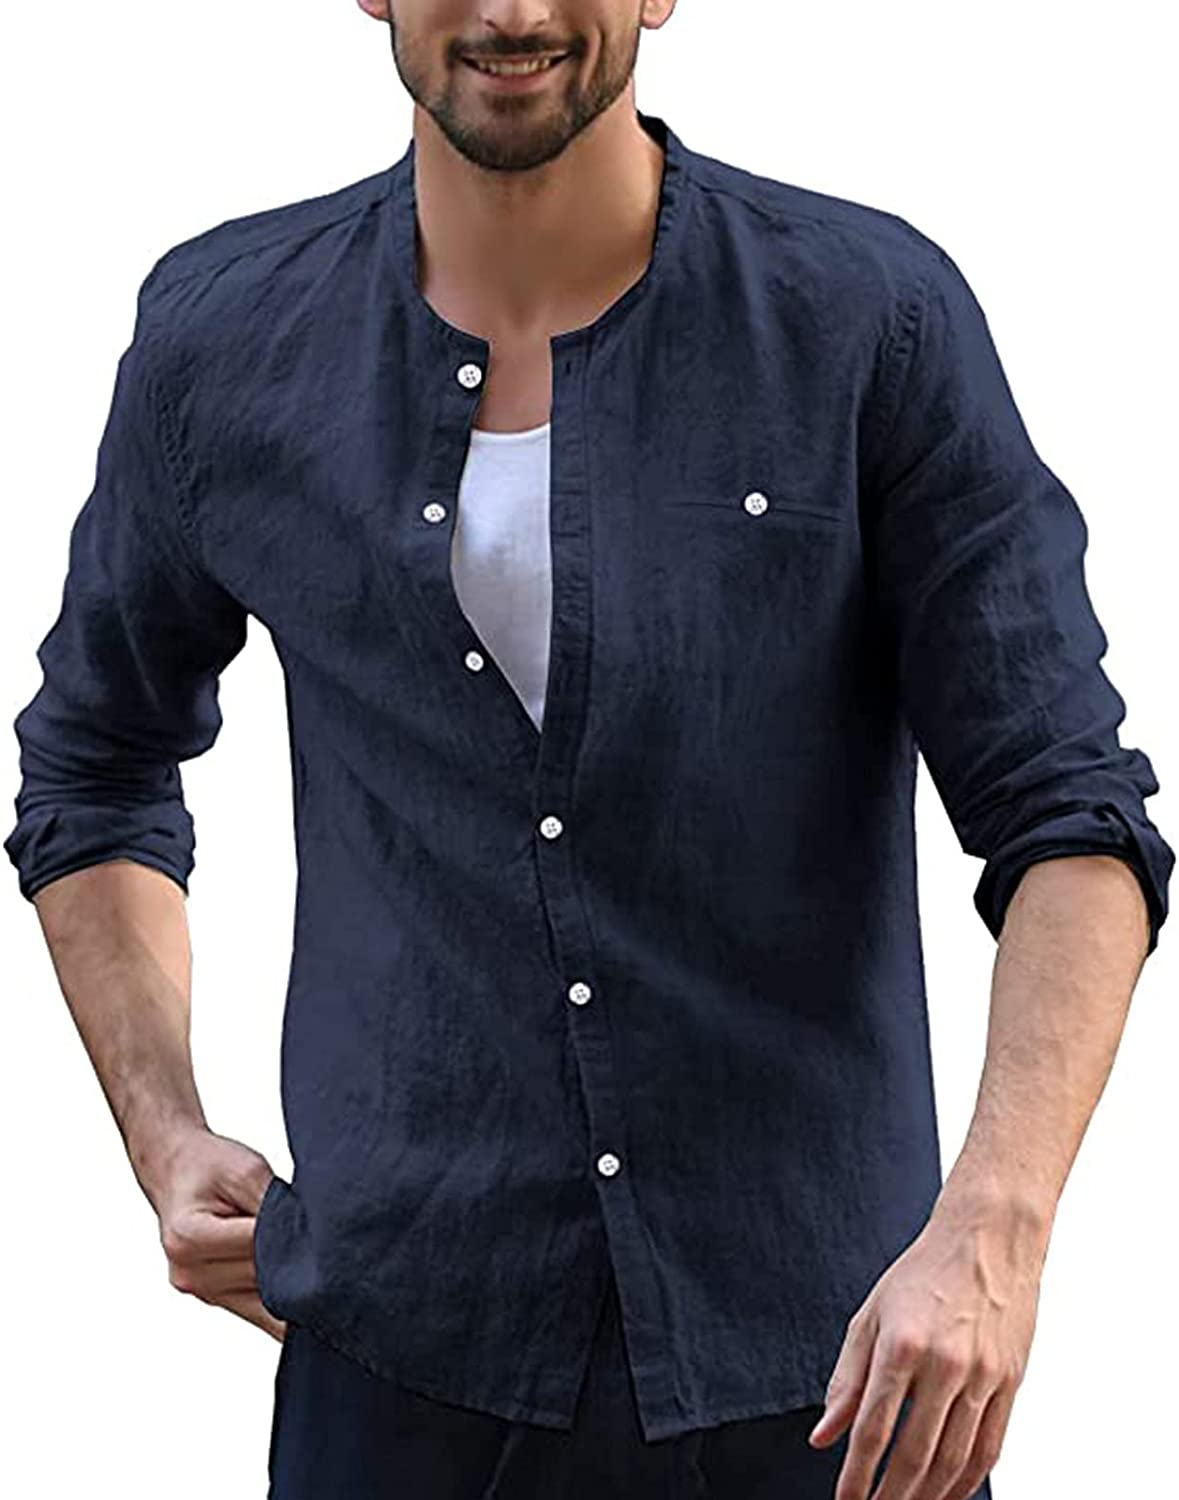 Mens Casual T-Shirt Long Sleeve Linen Button Down Solid V Neck Classic Slim-fit Tees Jacket Outdoor Hiking Shirt